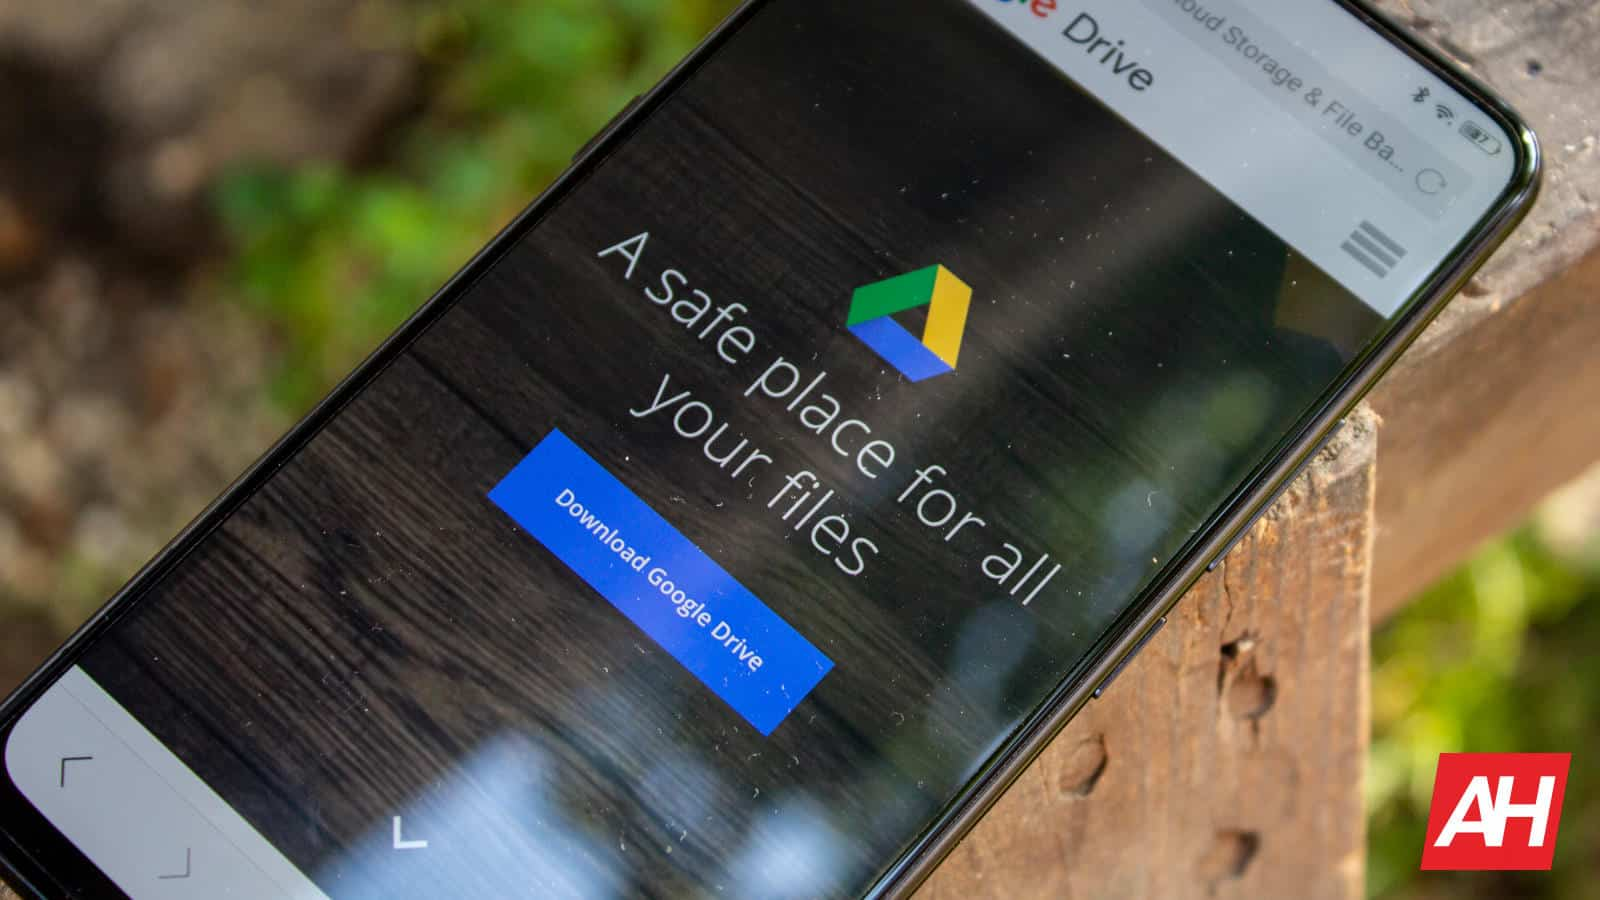 Google Drive To Add An Option For Blocking Spammers